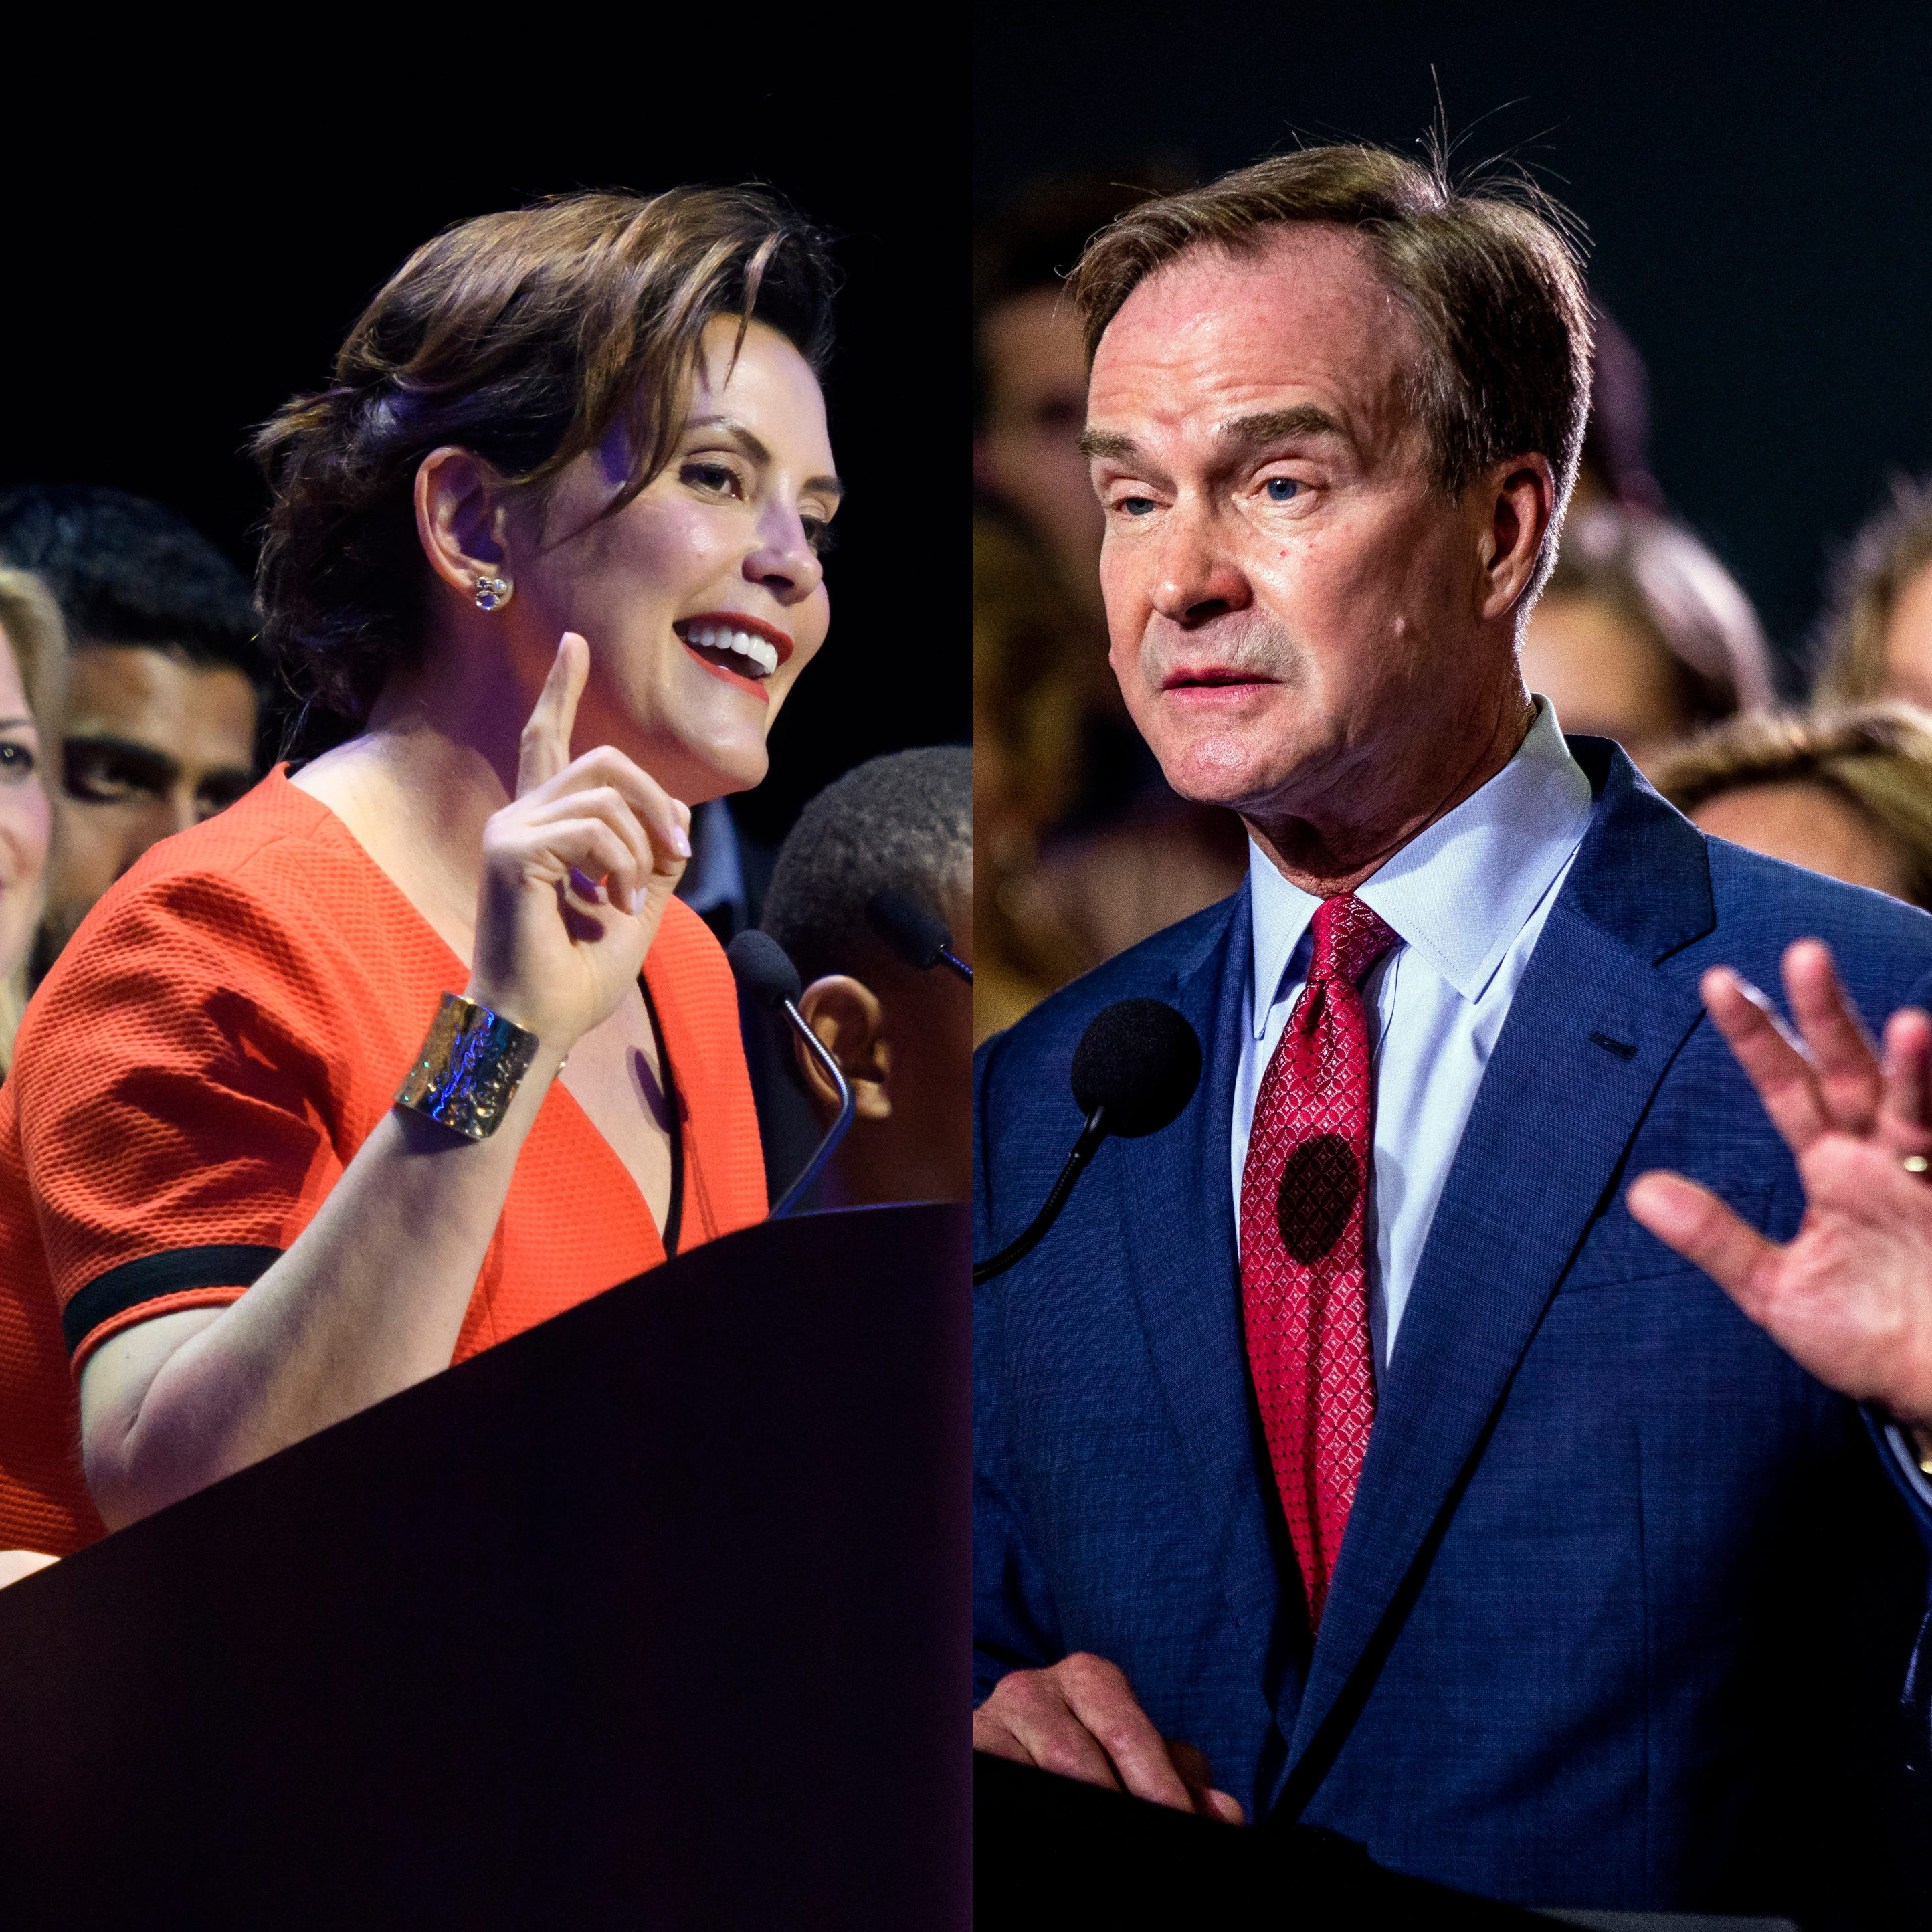 Finley: Schuette v. Whitmer will test how much Michigan has changed